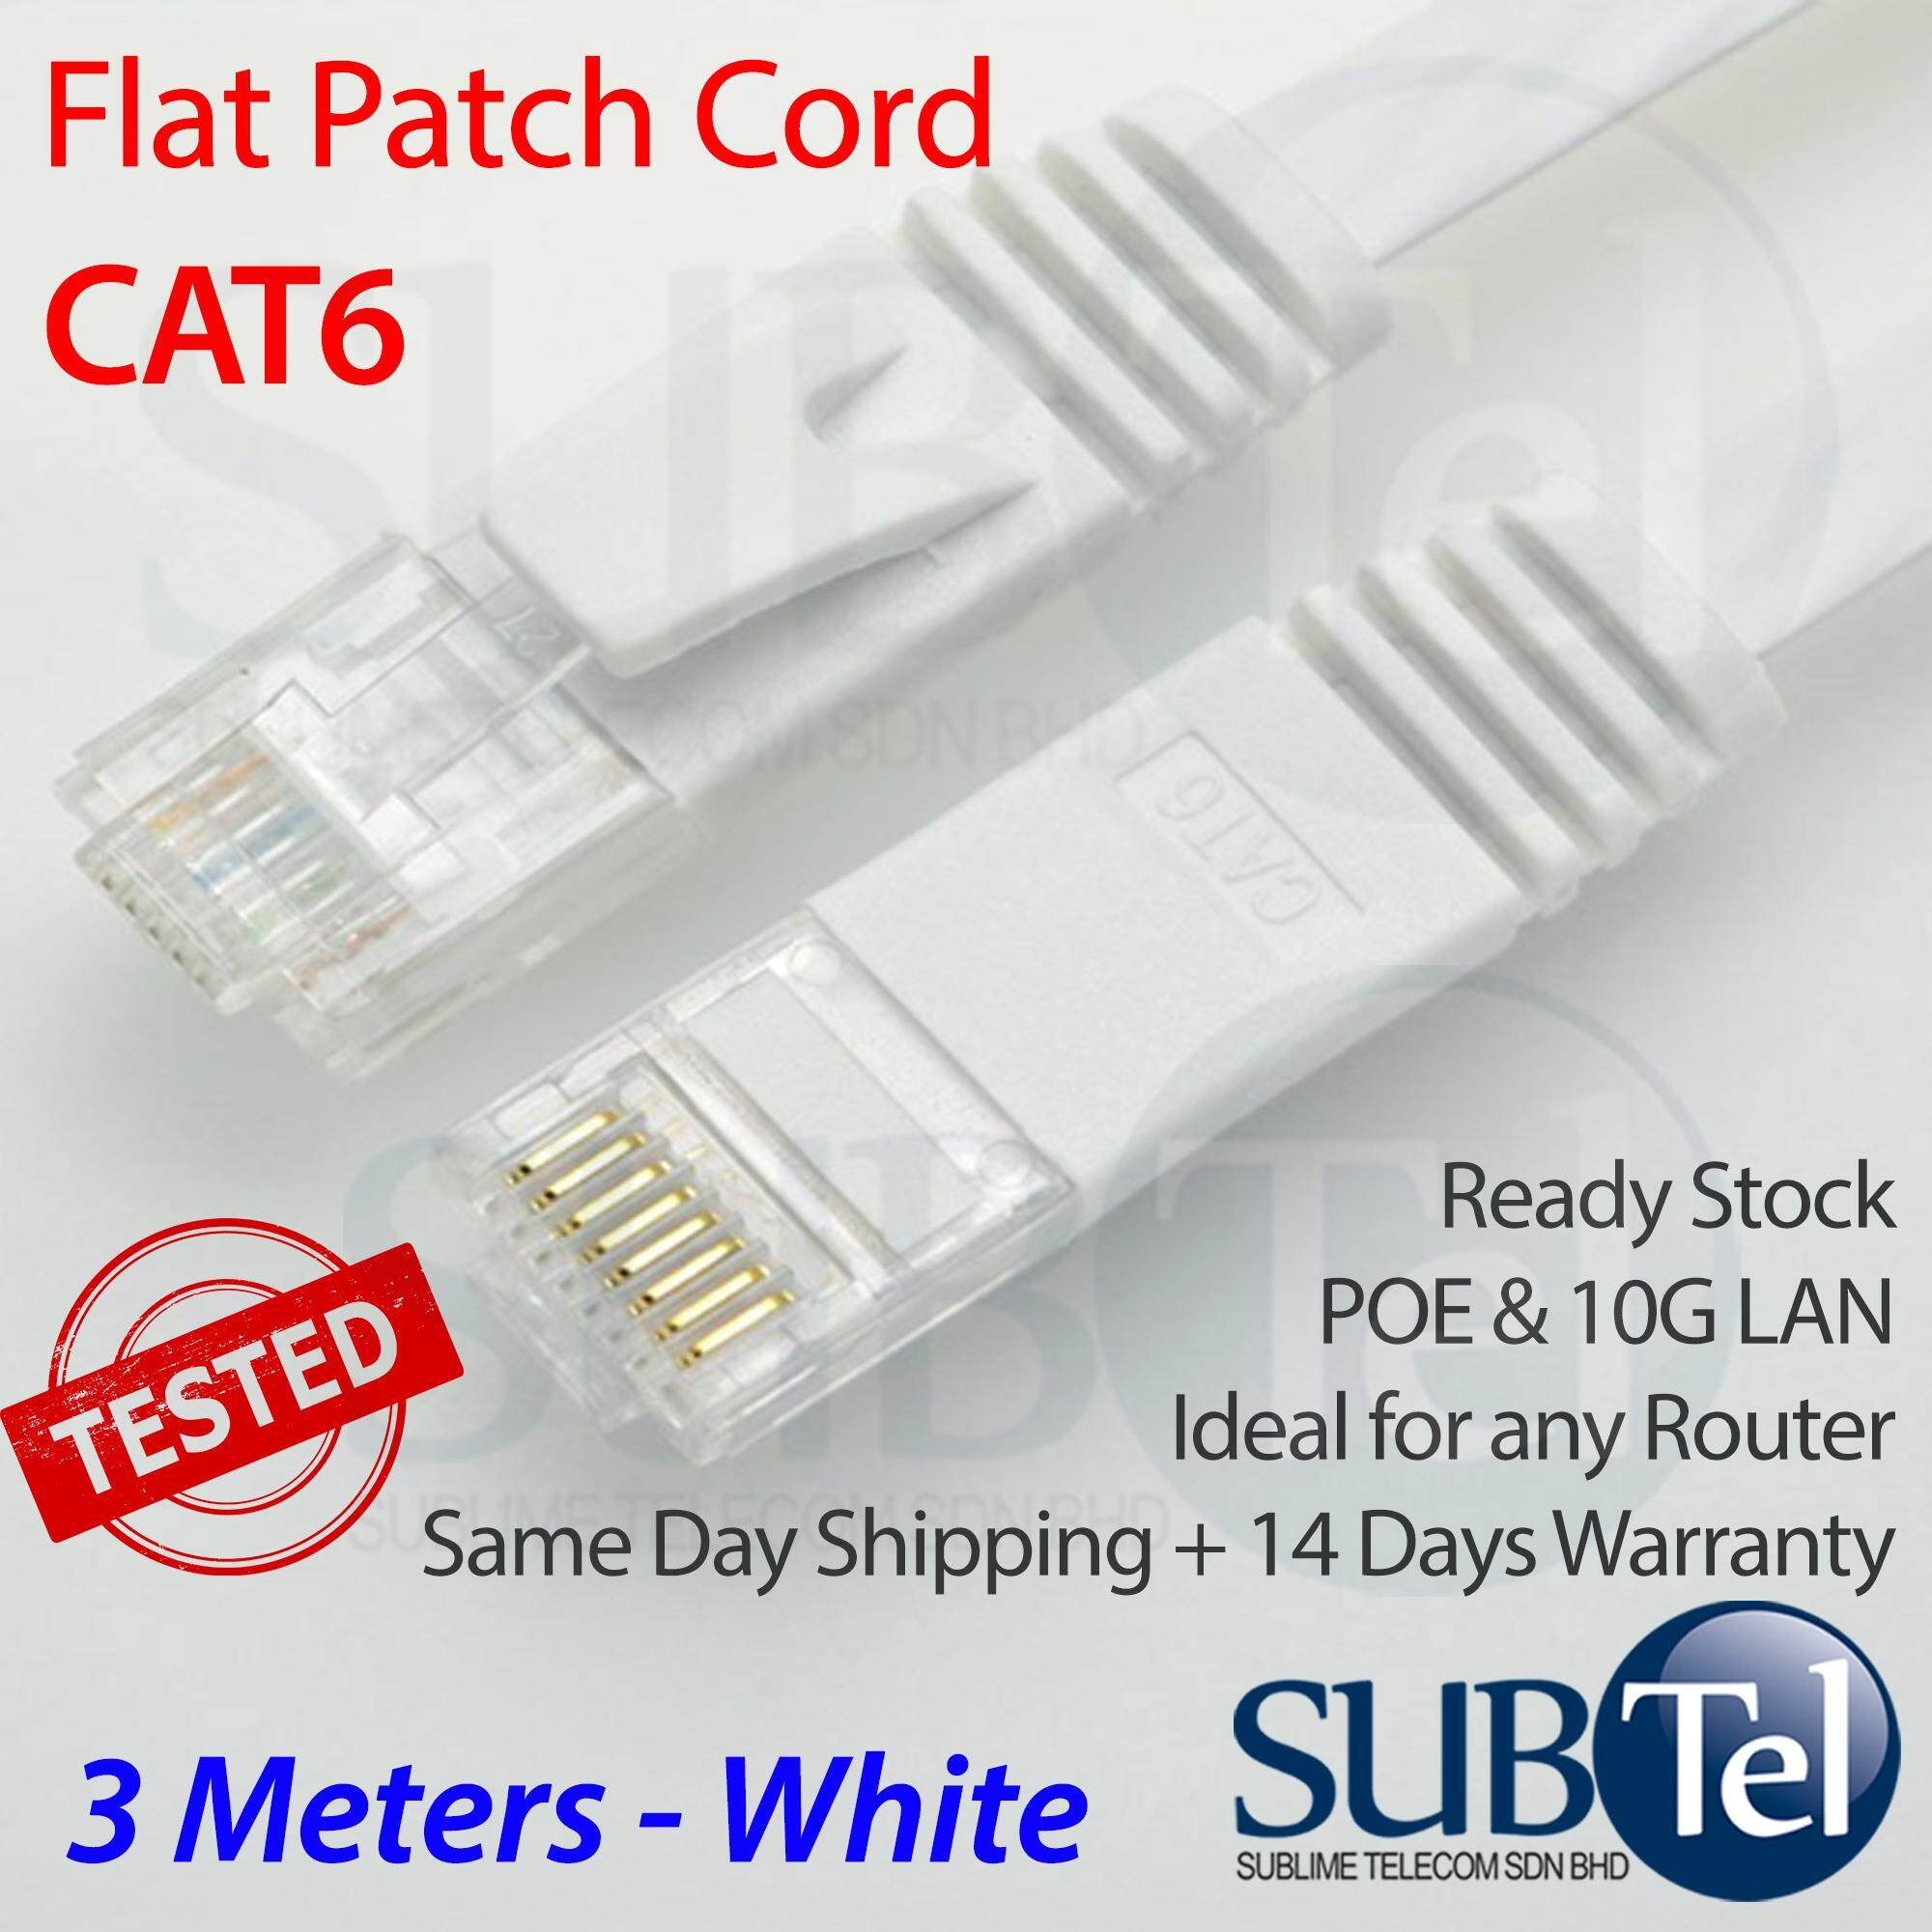 Computer Laptop Ethernet Cables For The Best Prices In Malaysia Cat 5e Patch Cords Outdoor Cat5e 3m Cat6 Flat Cord Lan Cable Gigabit 10g Rj45 Utp Black Or